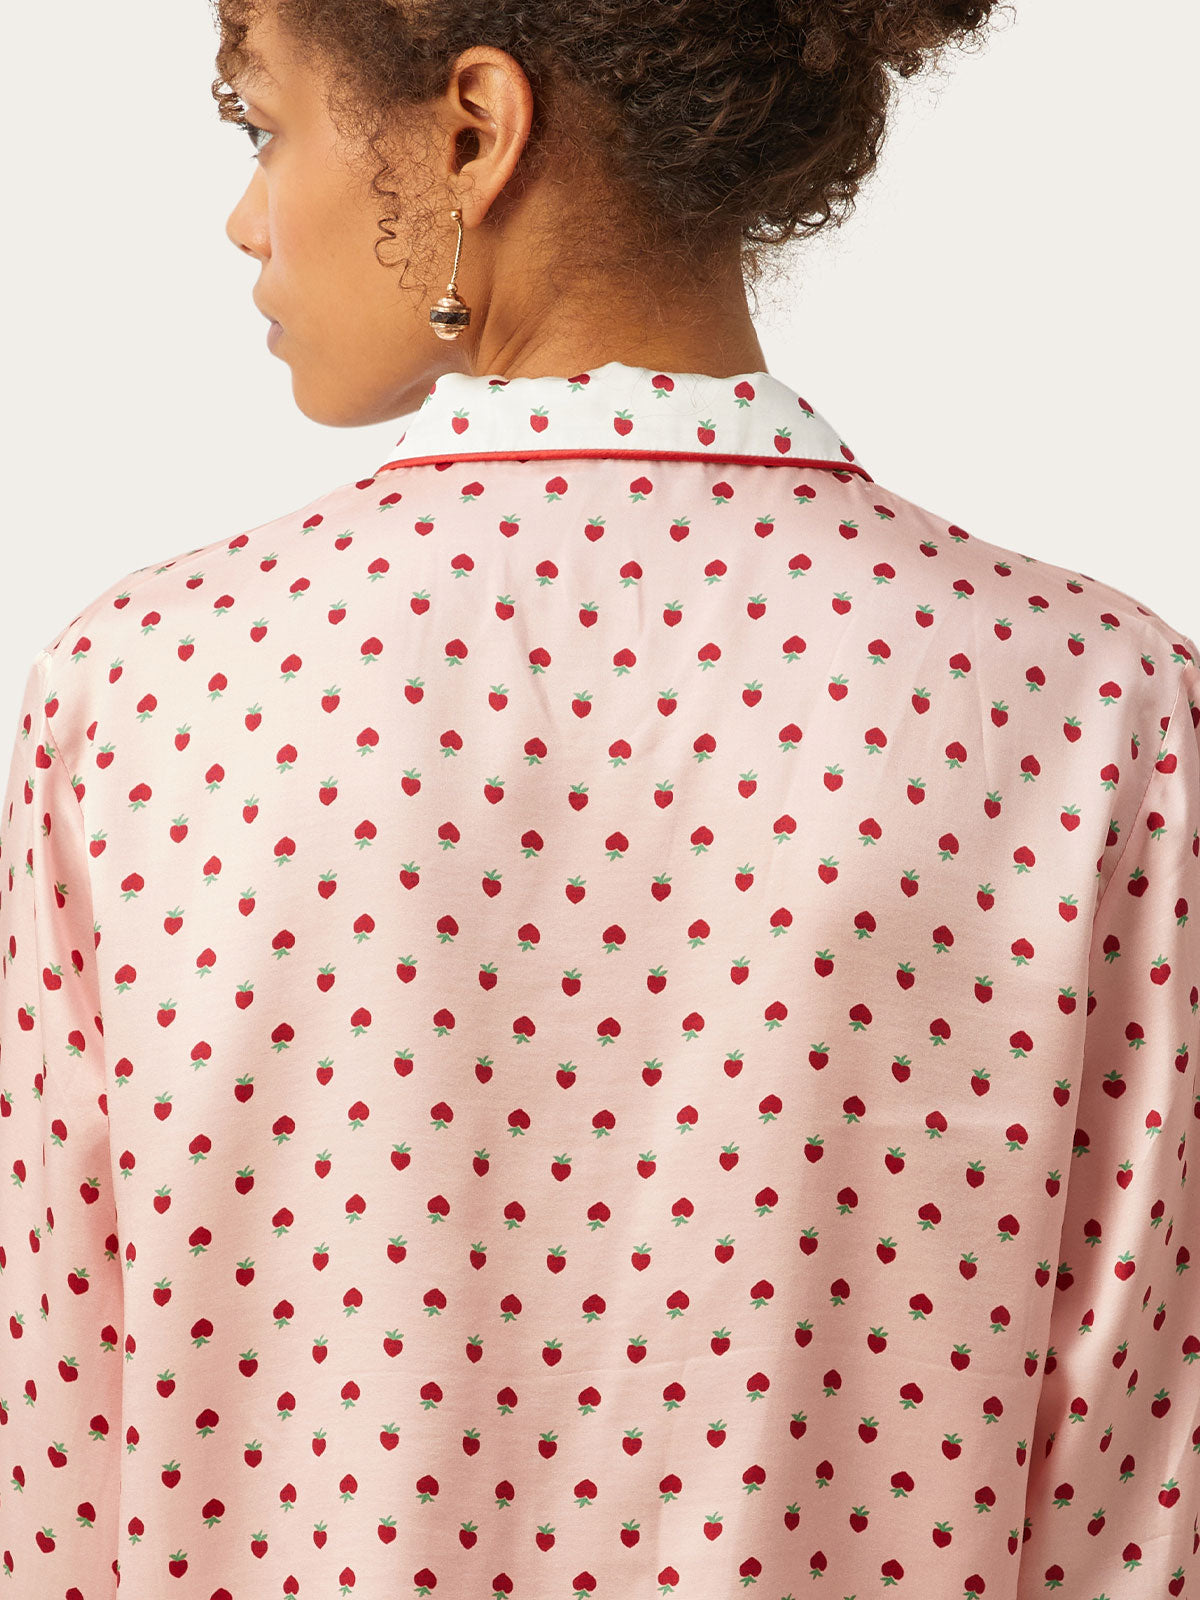 Ruthie Top in Strawberry Hearts By Morgan Lane